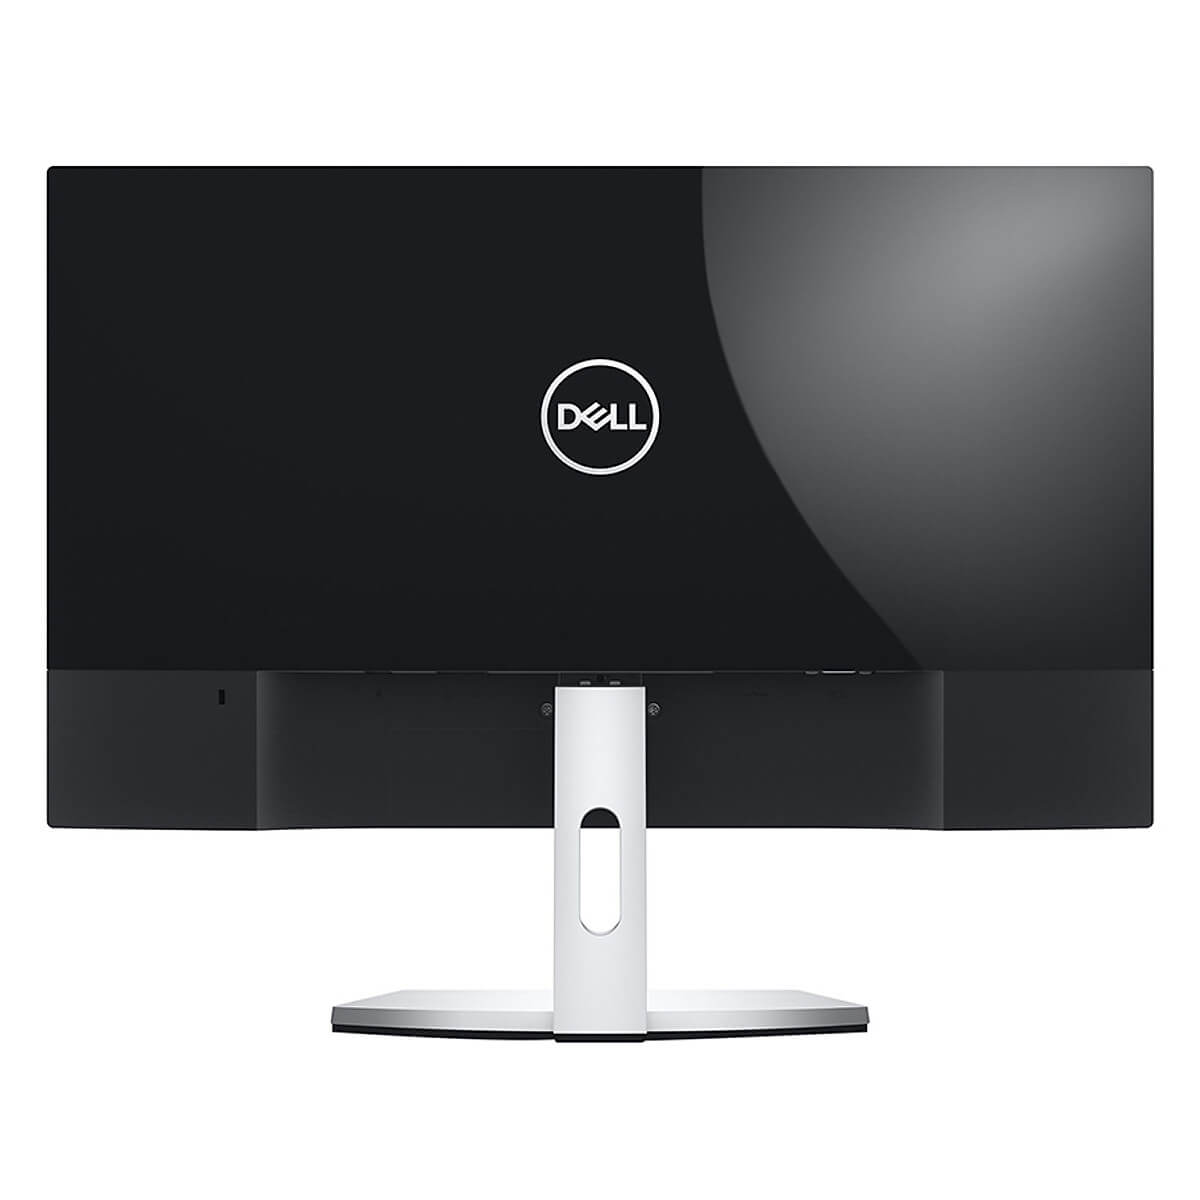 Màn Hình Dell S2319H 23 Inch Full HD (1920 x 1080) 5ms 60Hz IPS Stereo Speakers 3W x 2